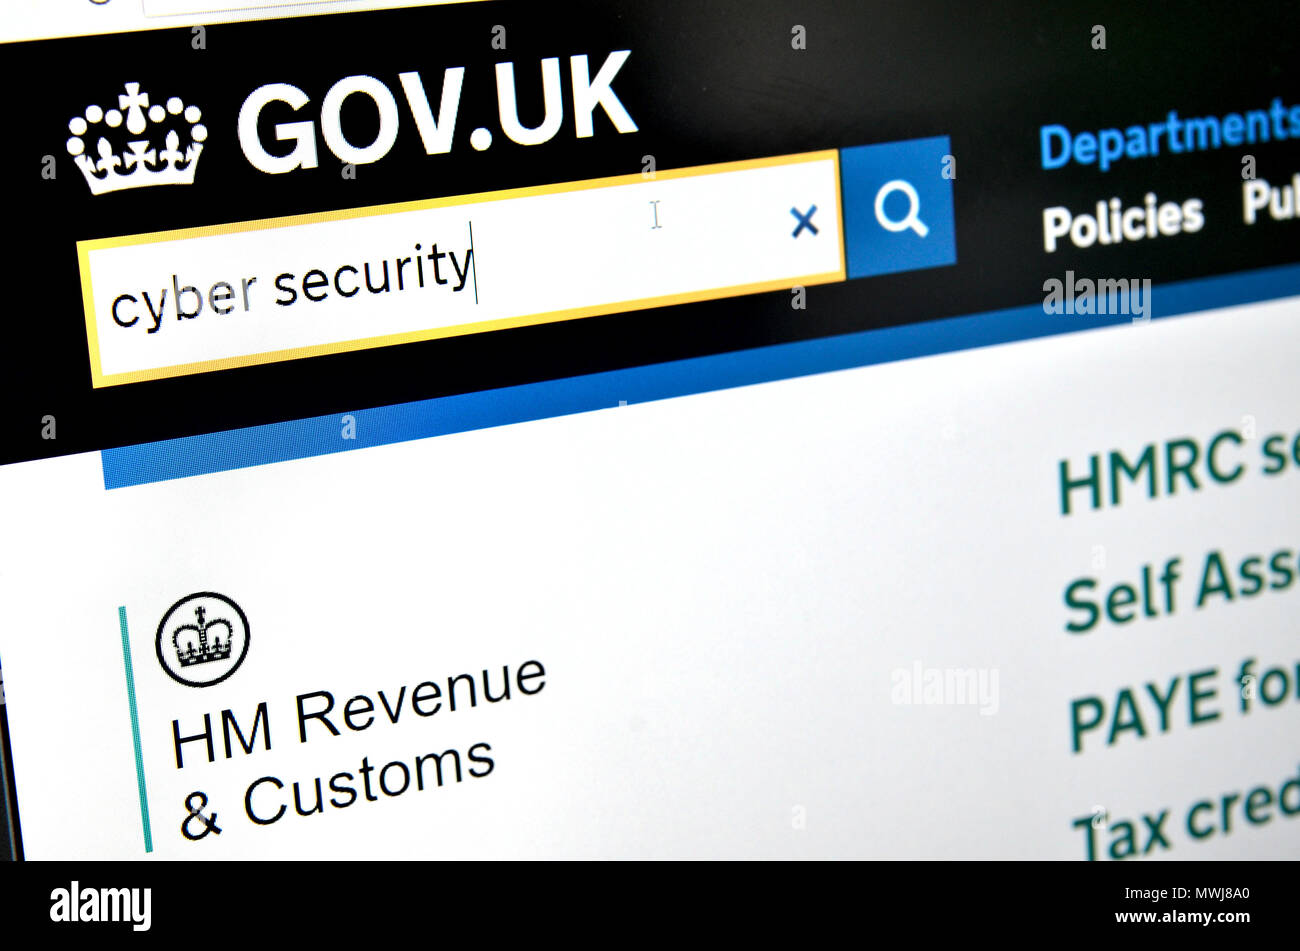 British Government HMRC Tax website: cyber security - Stock Image